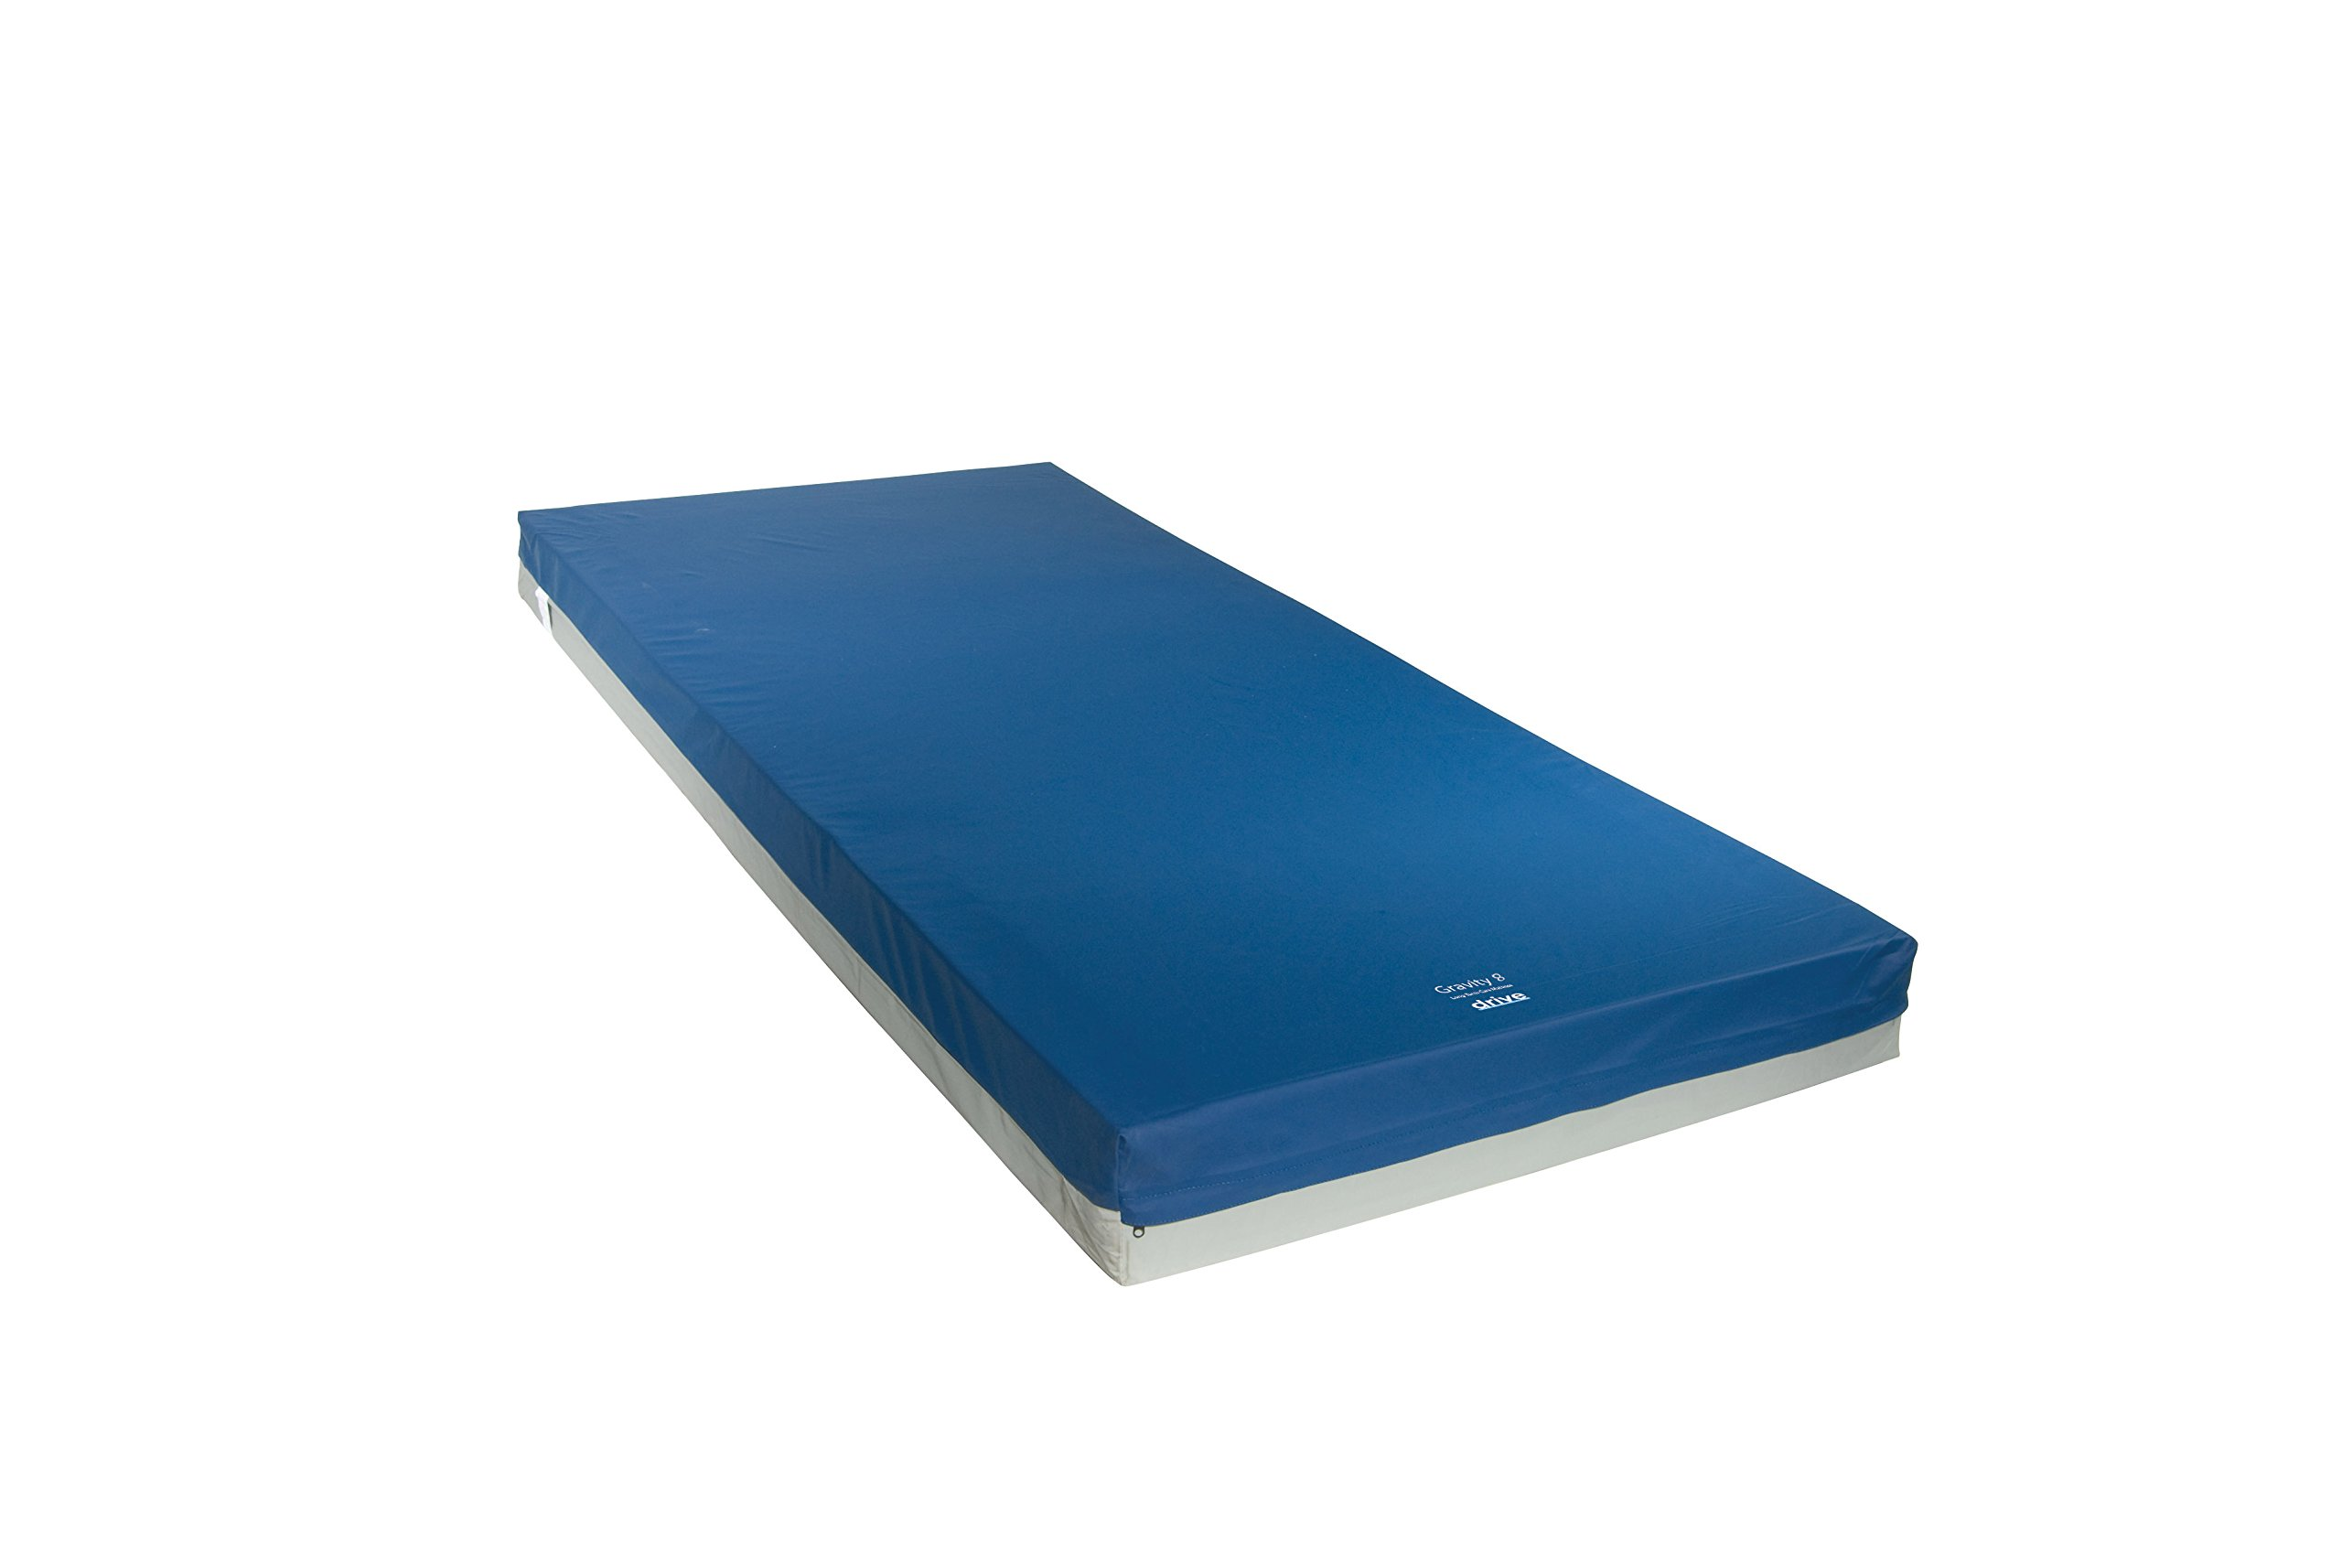 Drive Medical 15777 Gravity 7 Long Term Care Pressure Redistribution Mattress, Blue by Drive Medical